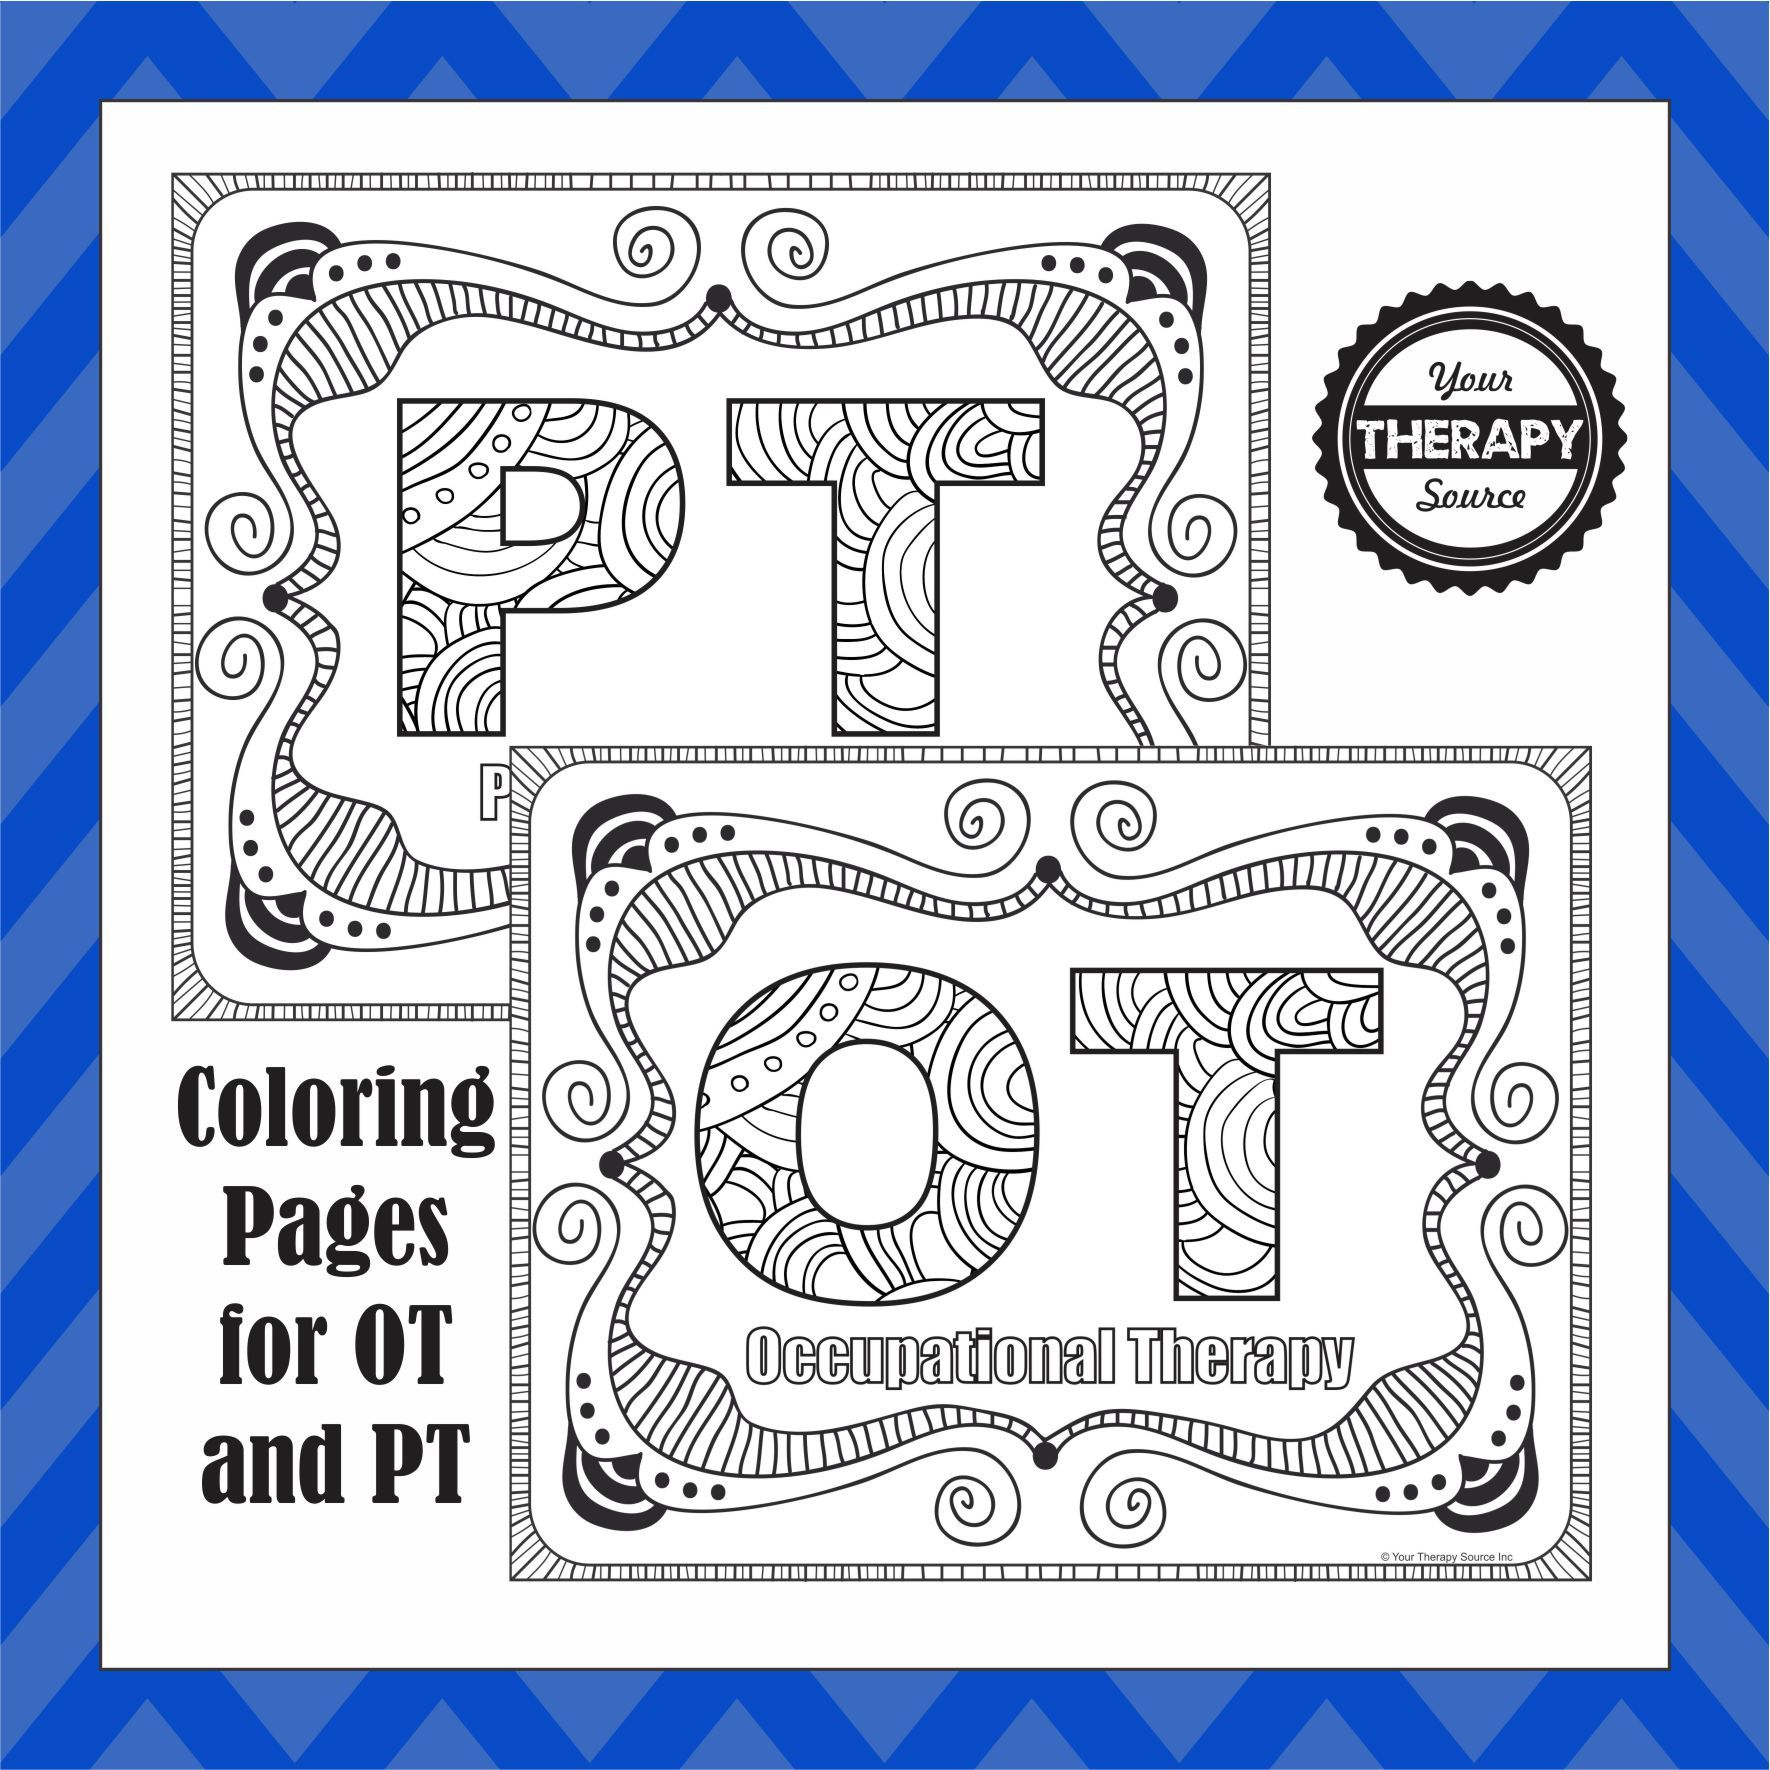 with intricate coloring sheets being super popular right now i thought i would create a few for occupational and physical therapy - Simple Therapeutic Coloring Pages